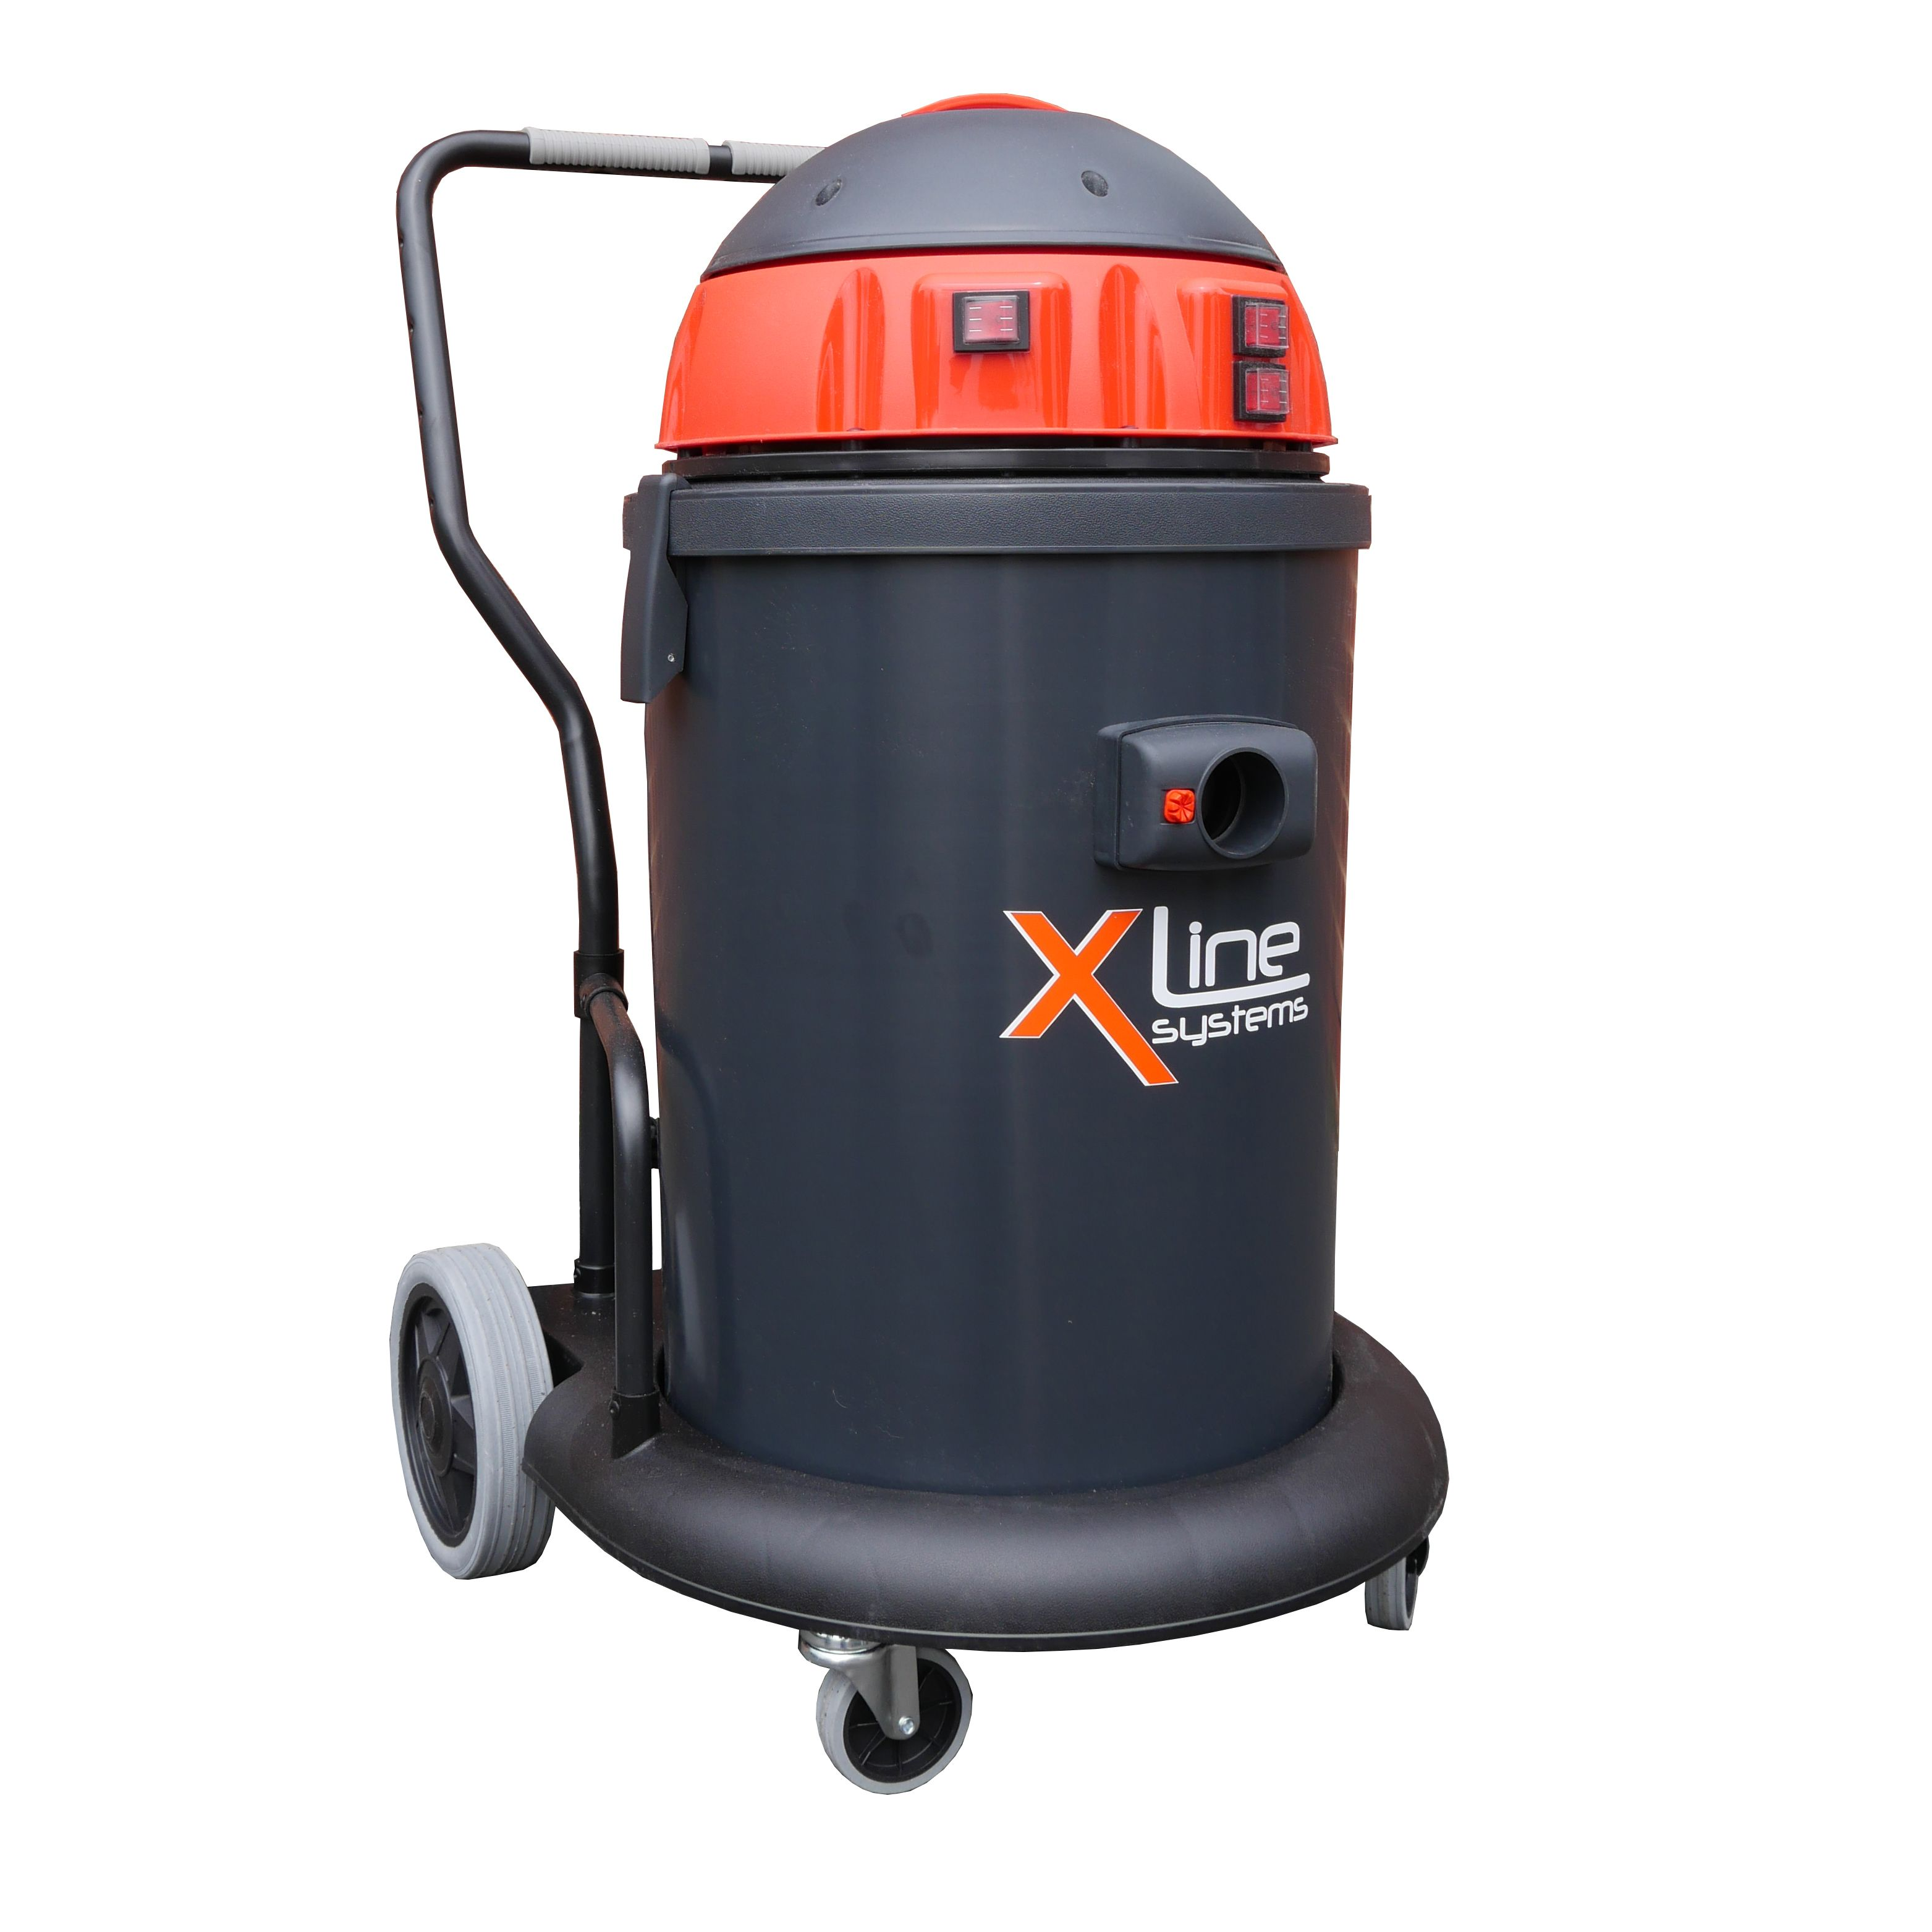 Xline 3500w Gutter Vacuum Cleaning Machine Triple Motor